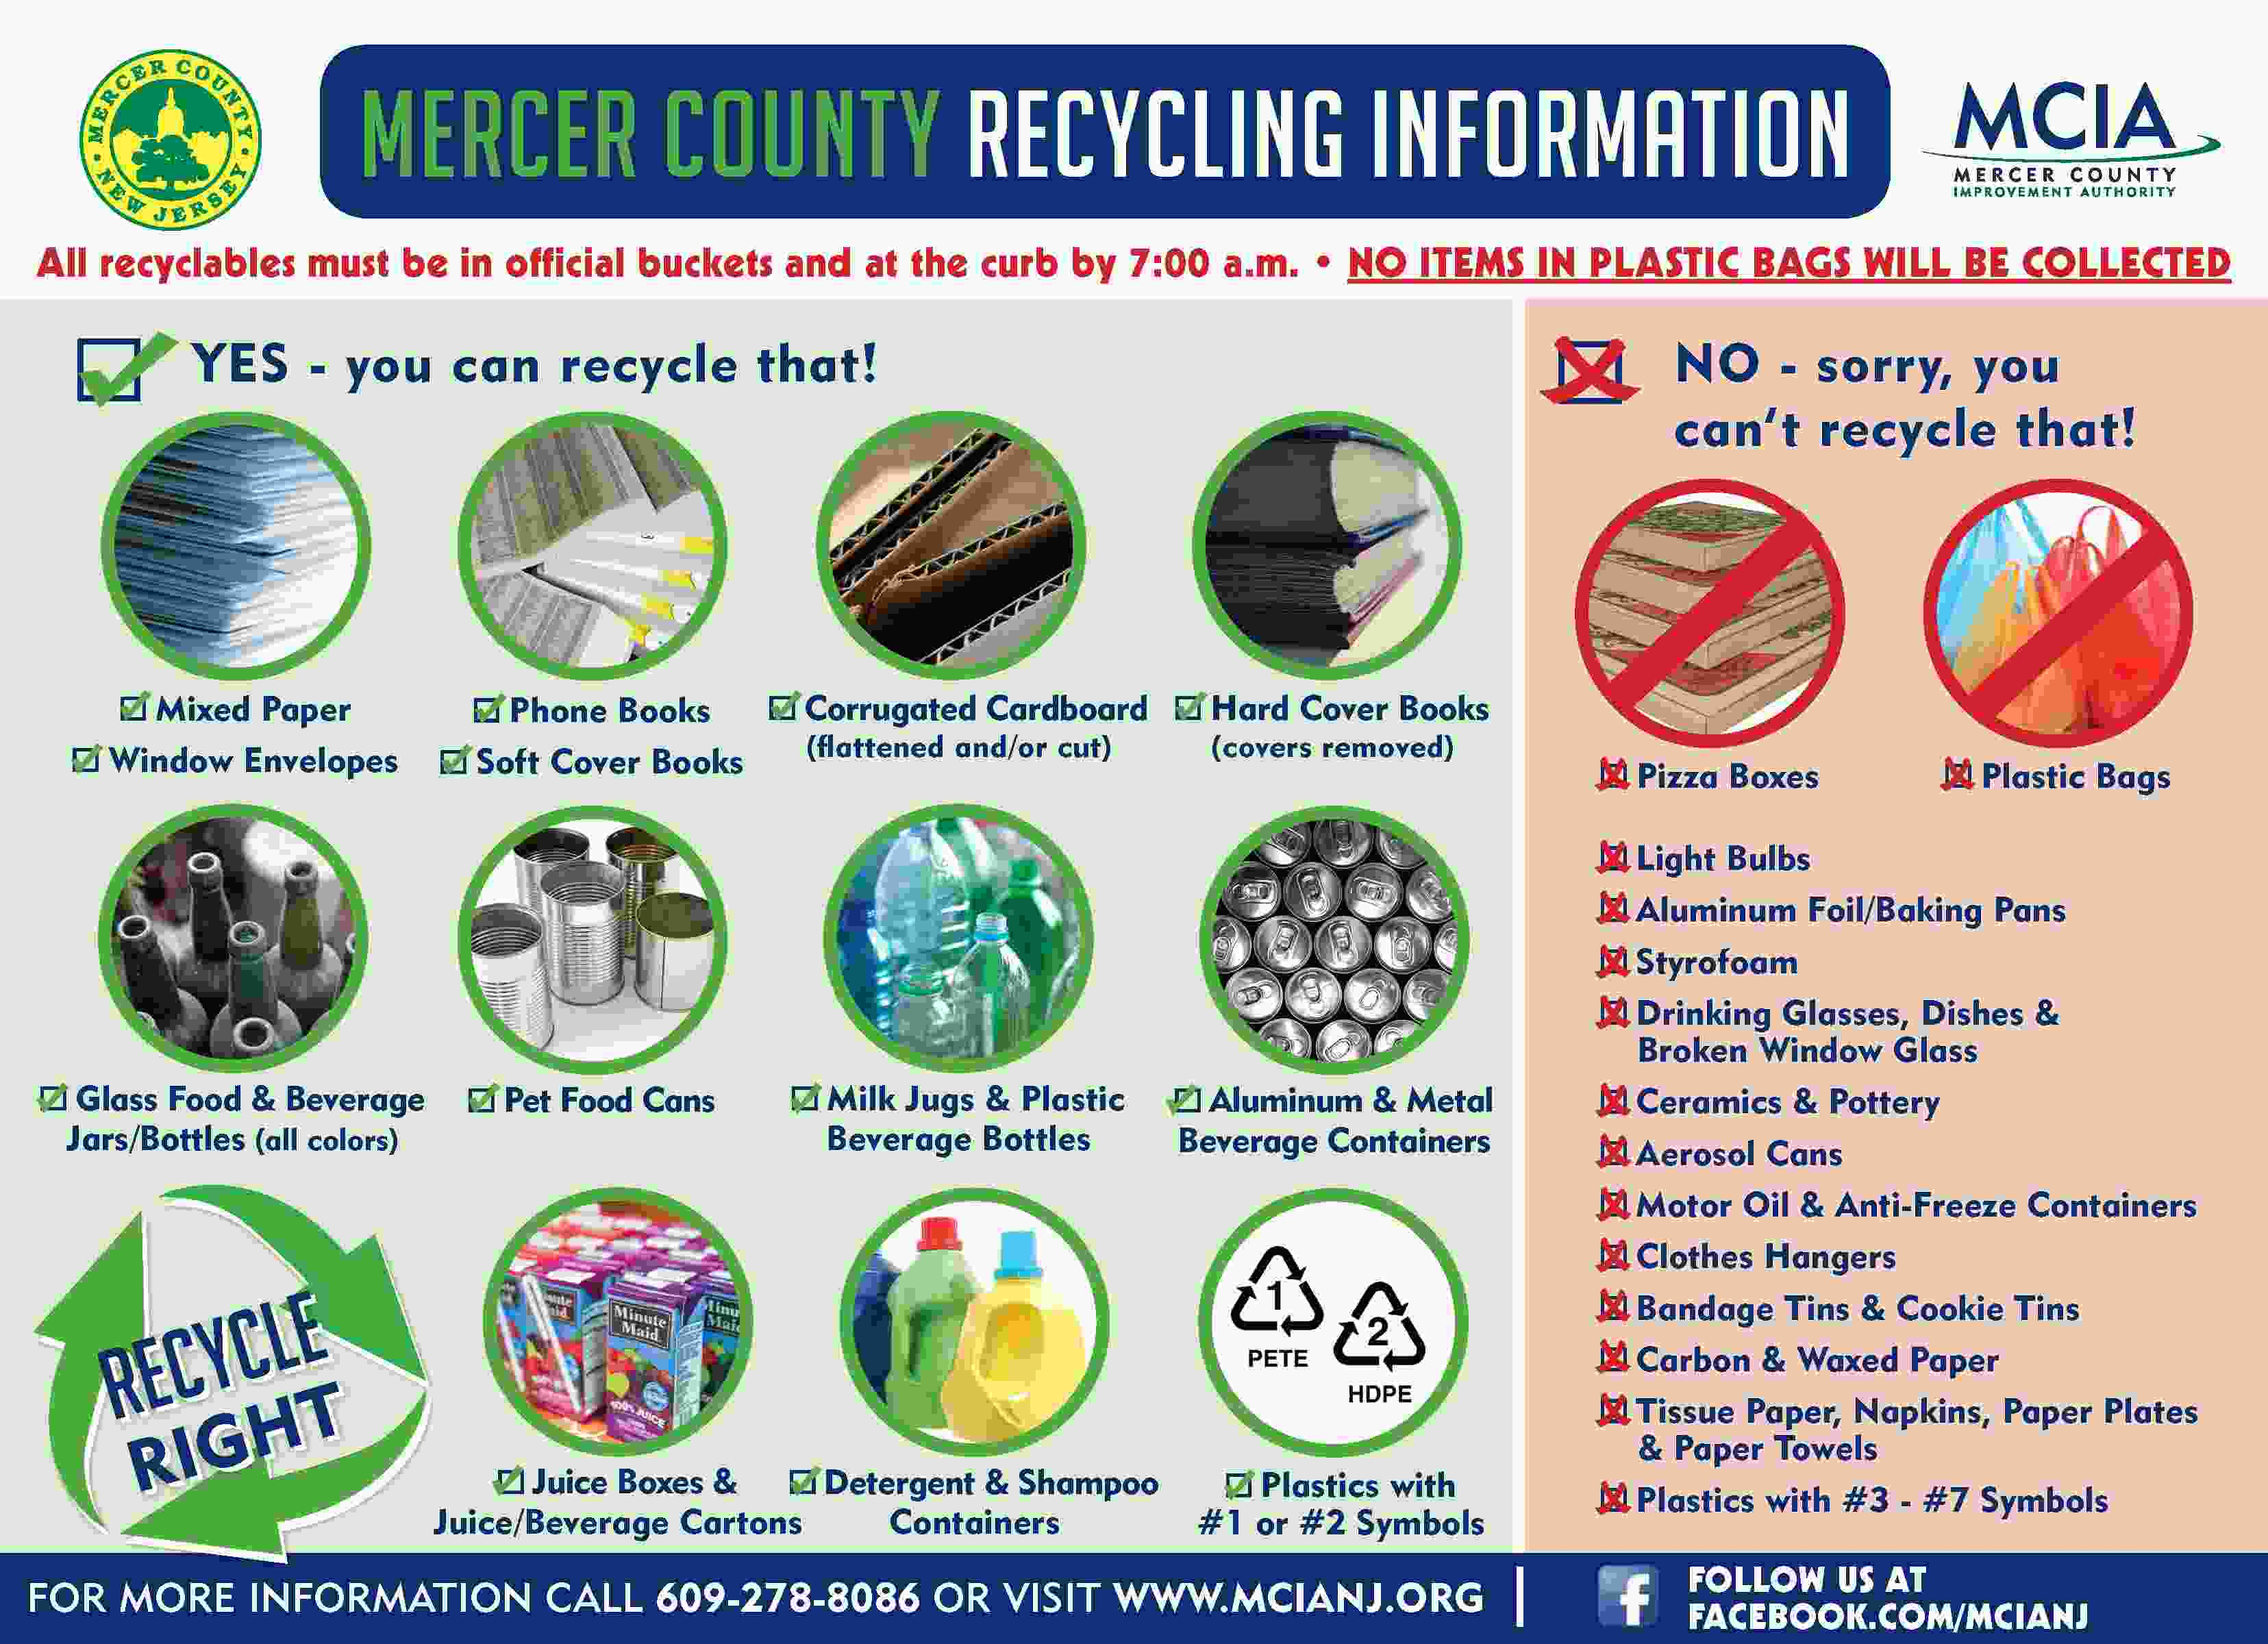 Recycling rules from Mercer County Improvement Authority